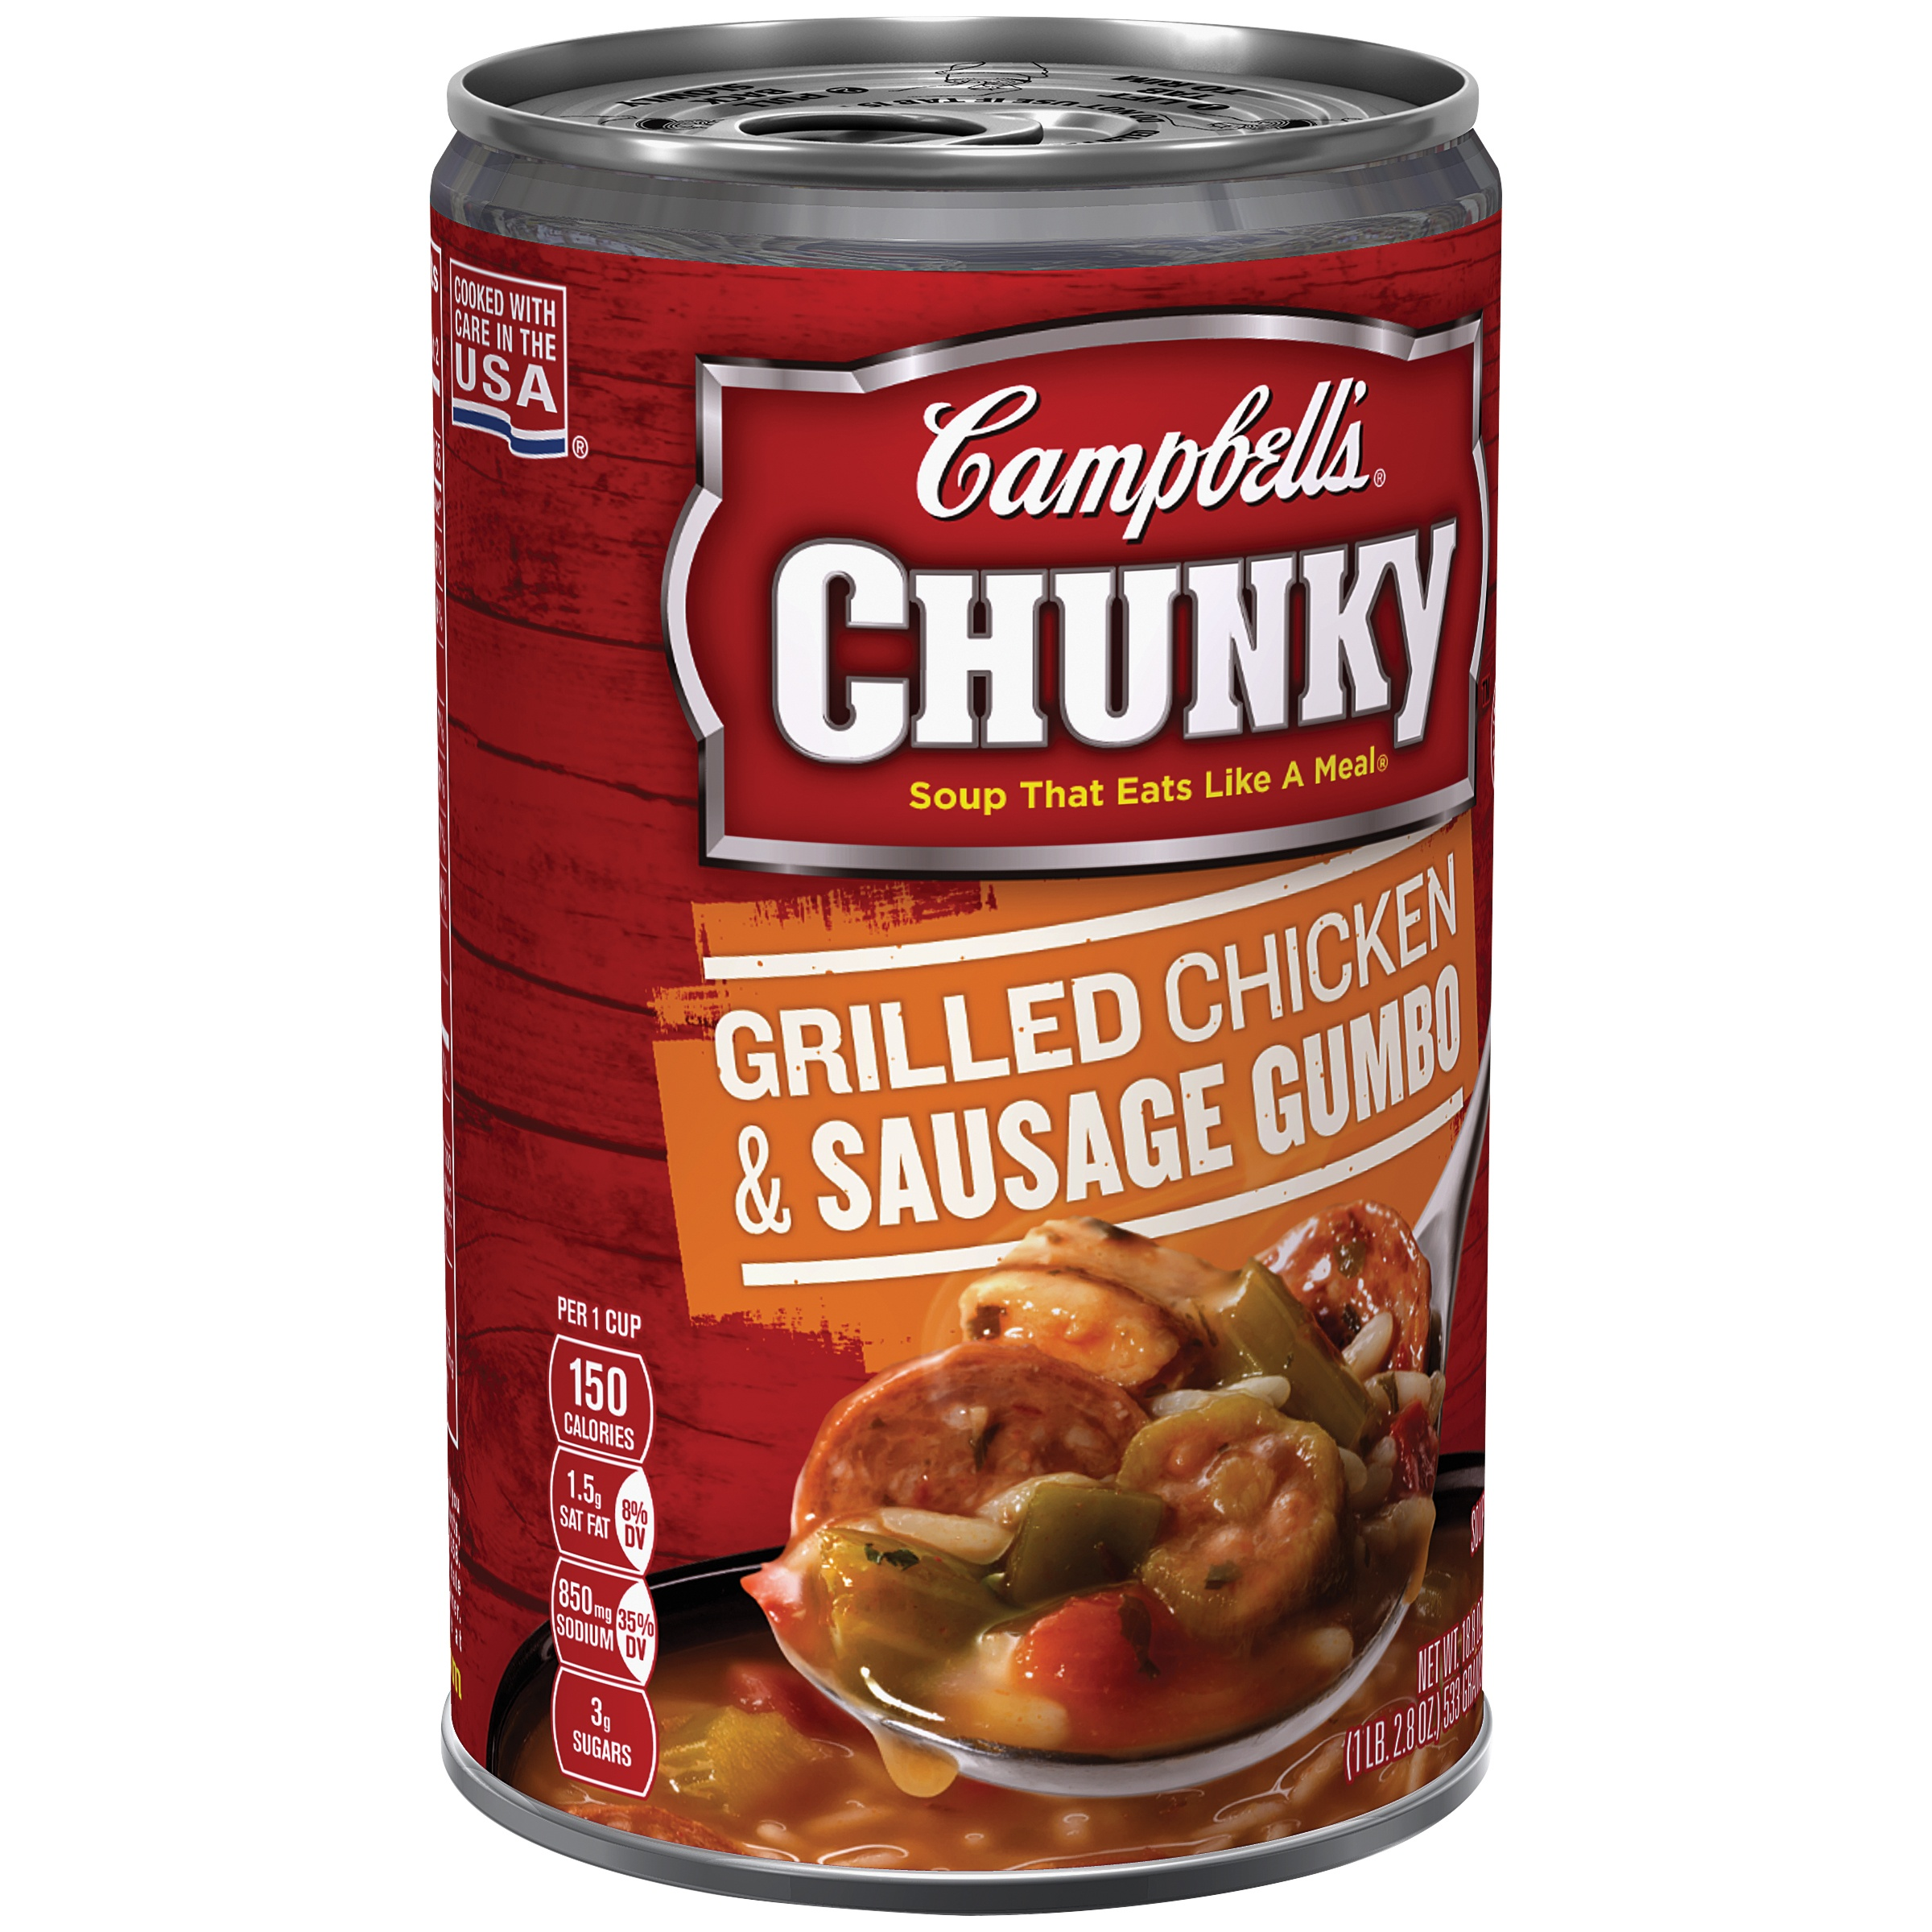 Campbell's Chunky Grilled & Sausage Gumbo Chicken Soup, 18.8 oz